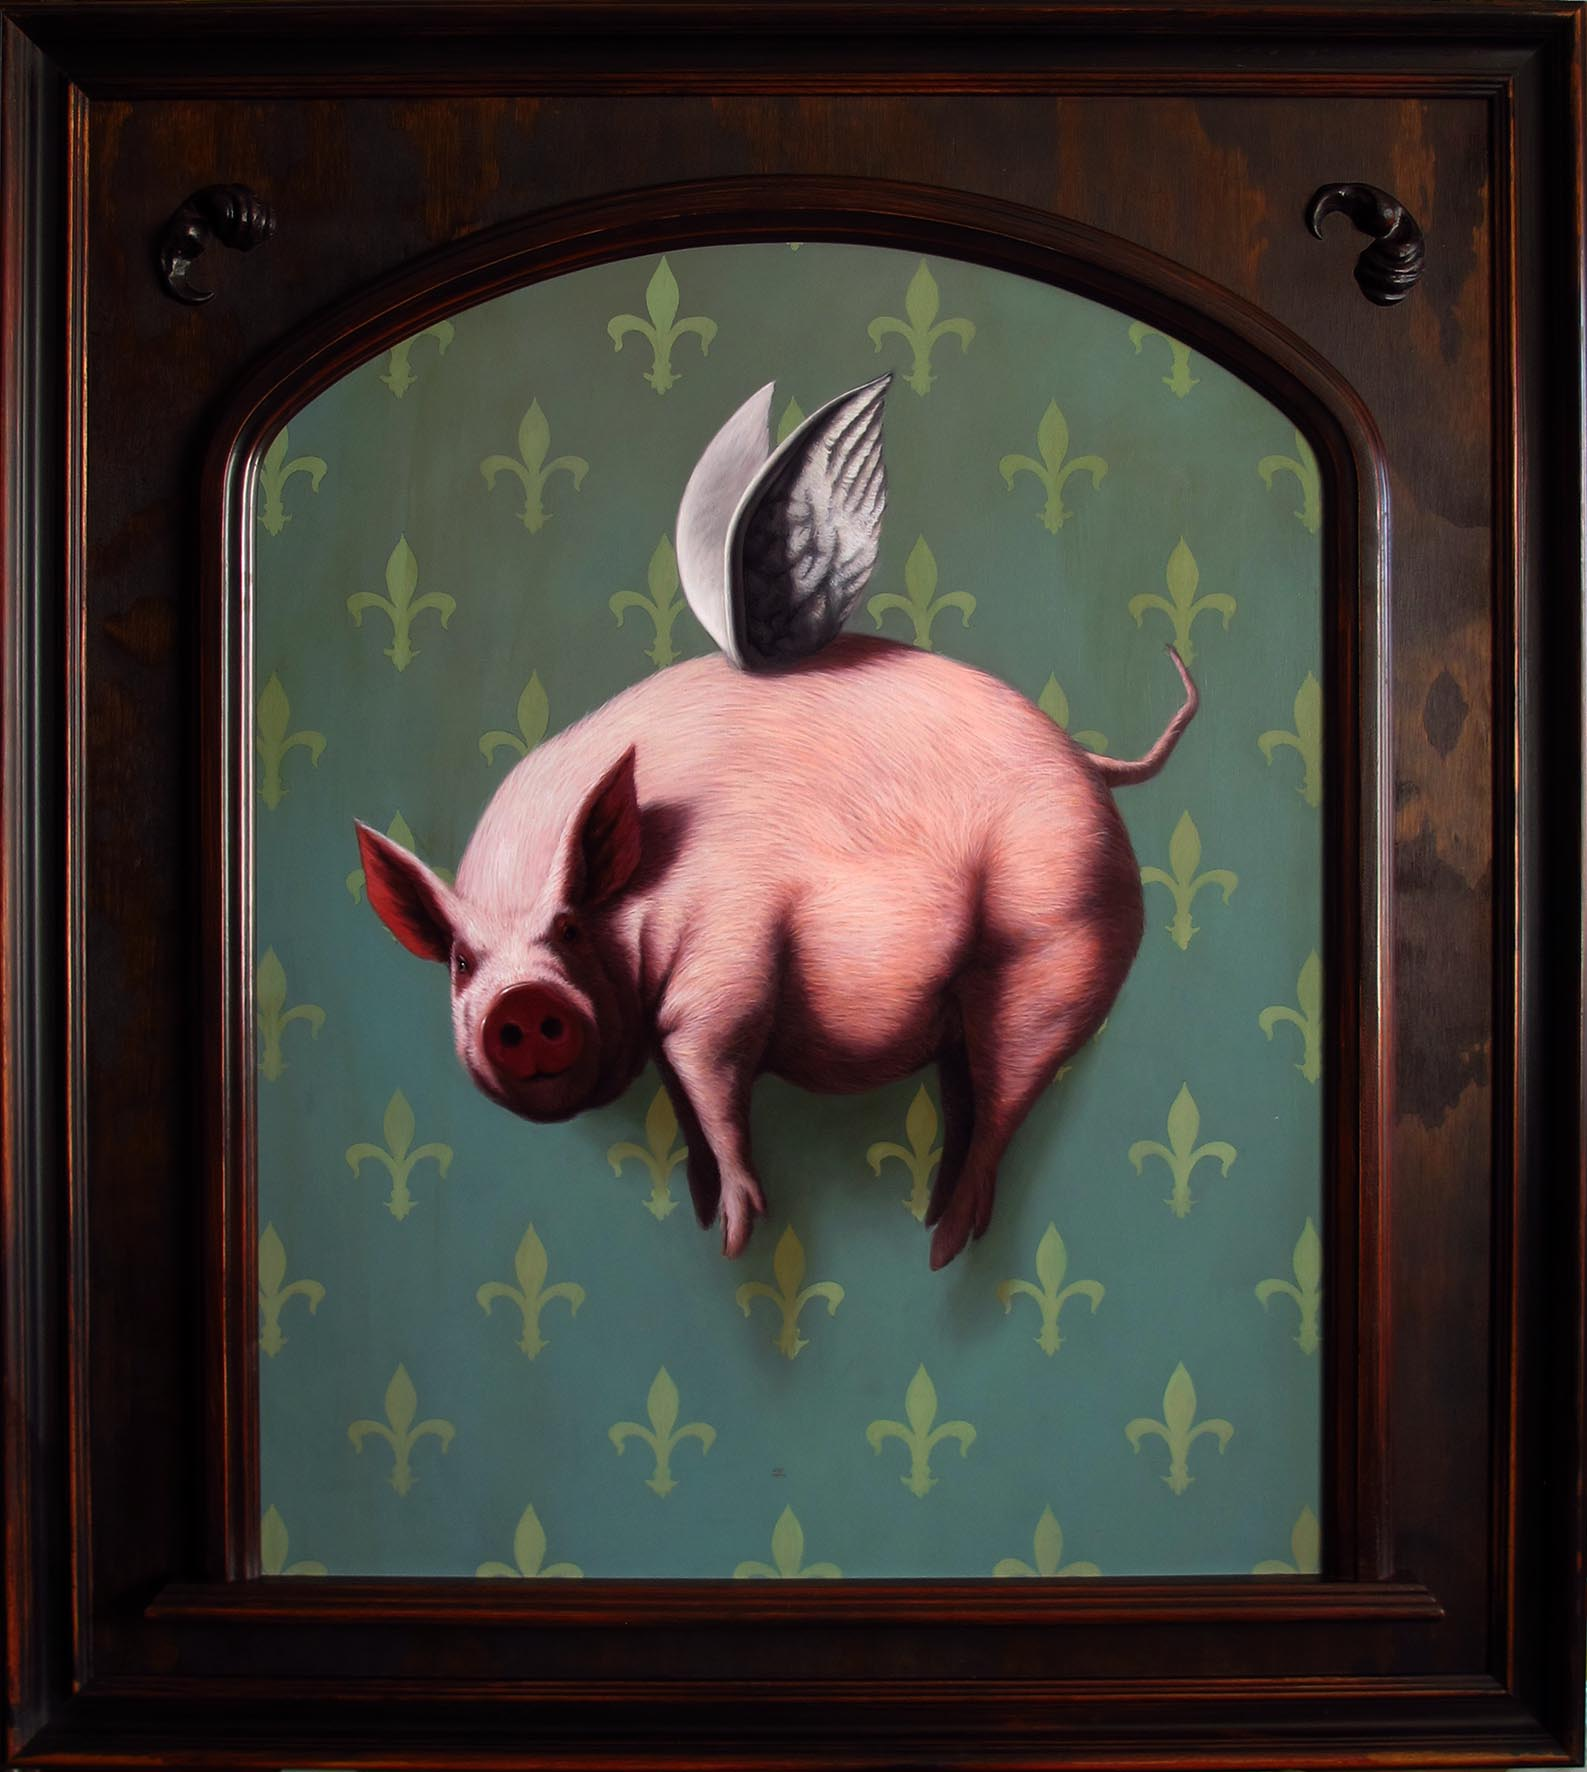 Flying Pig By Daniel Sueiras Fanjul images/Urbane Art Gallery Flying Pig By Daniel Sueiras Fanjul.jpg